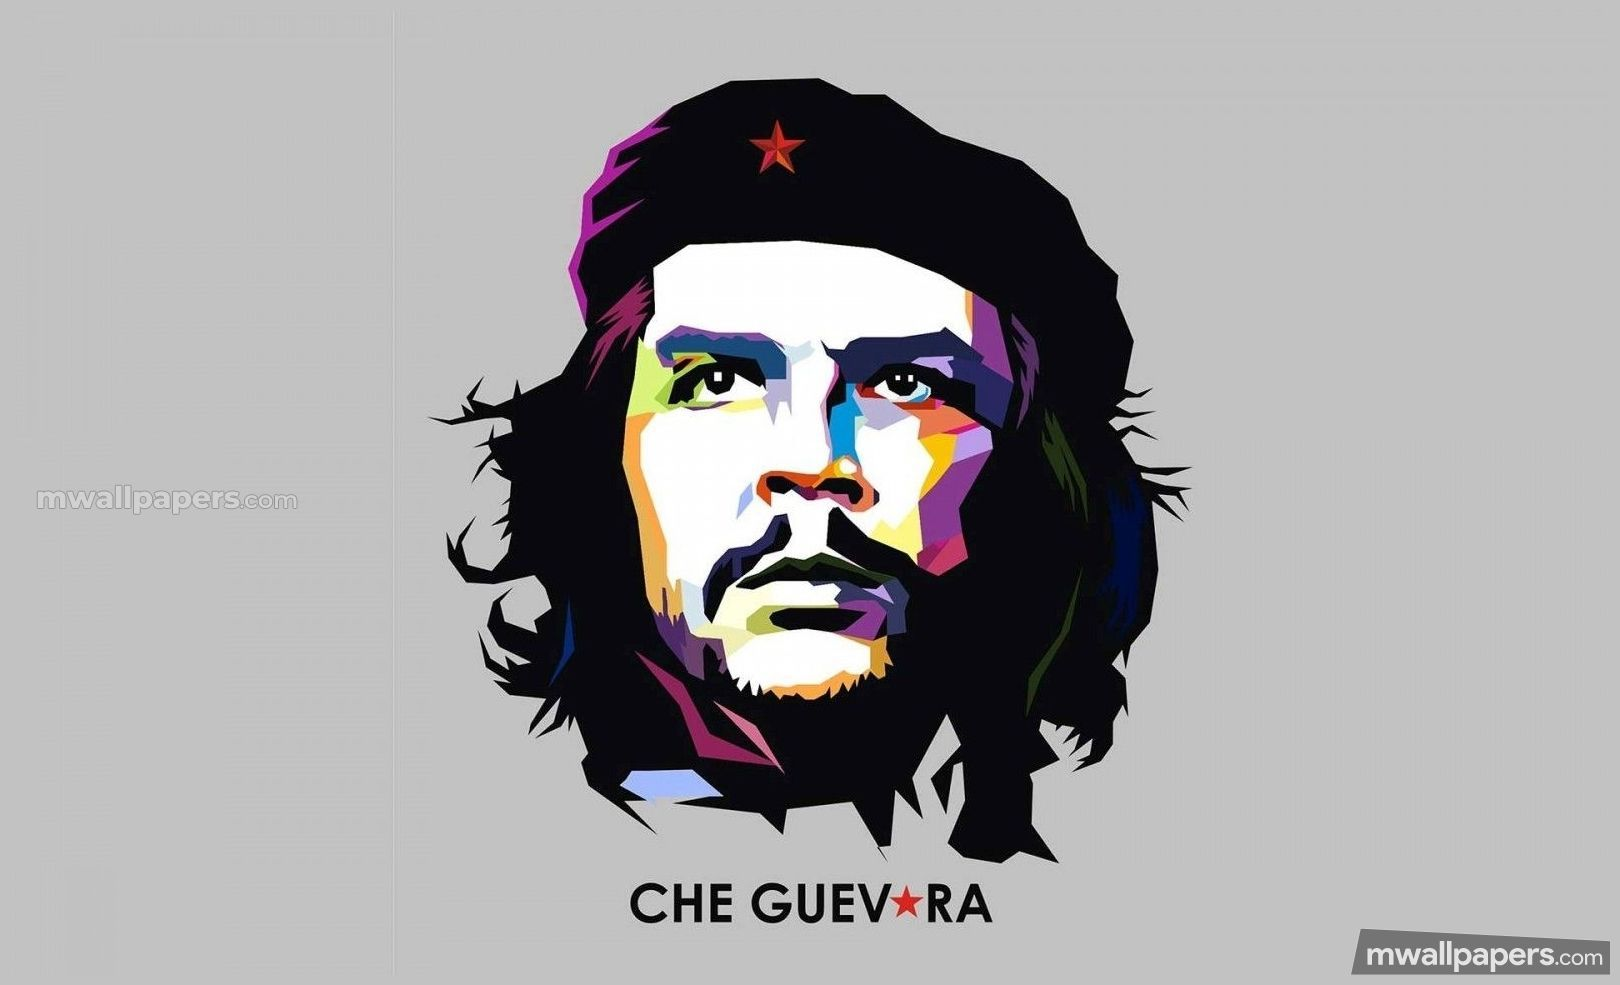 Che Guevara Wallpapers Top Free Che Guevara Backgrounds Wallpaperaccess